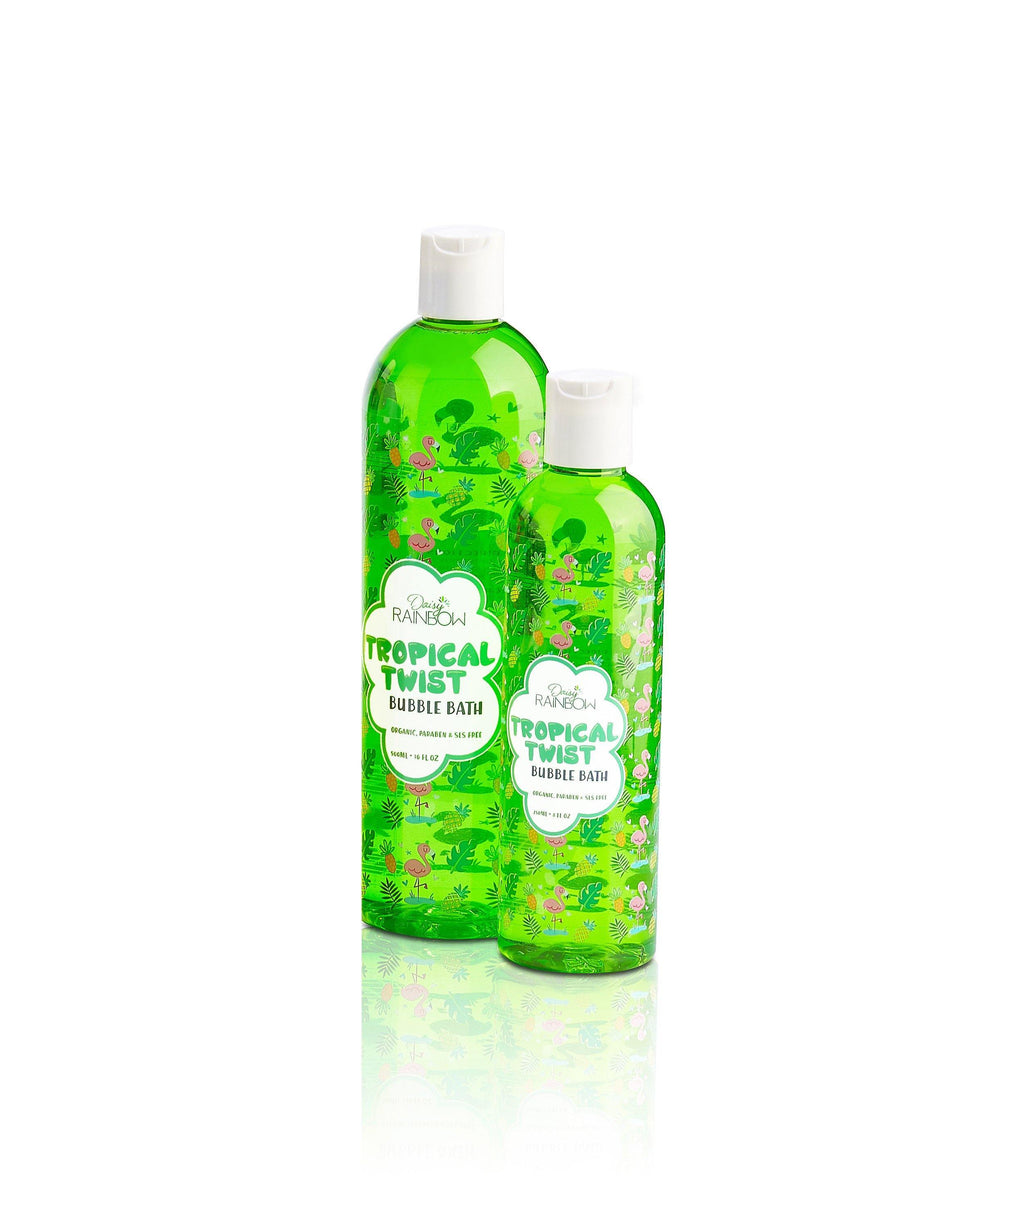 Daisy Rainbow Tropical Twist Bubble Bath - 250ml - Mrs Best Paper Co.